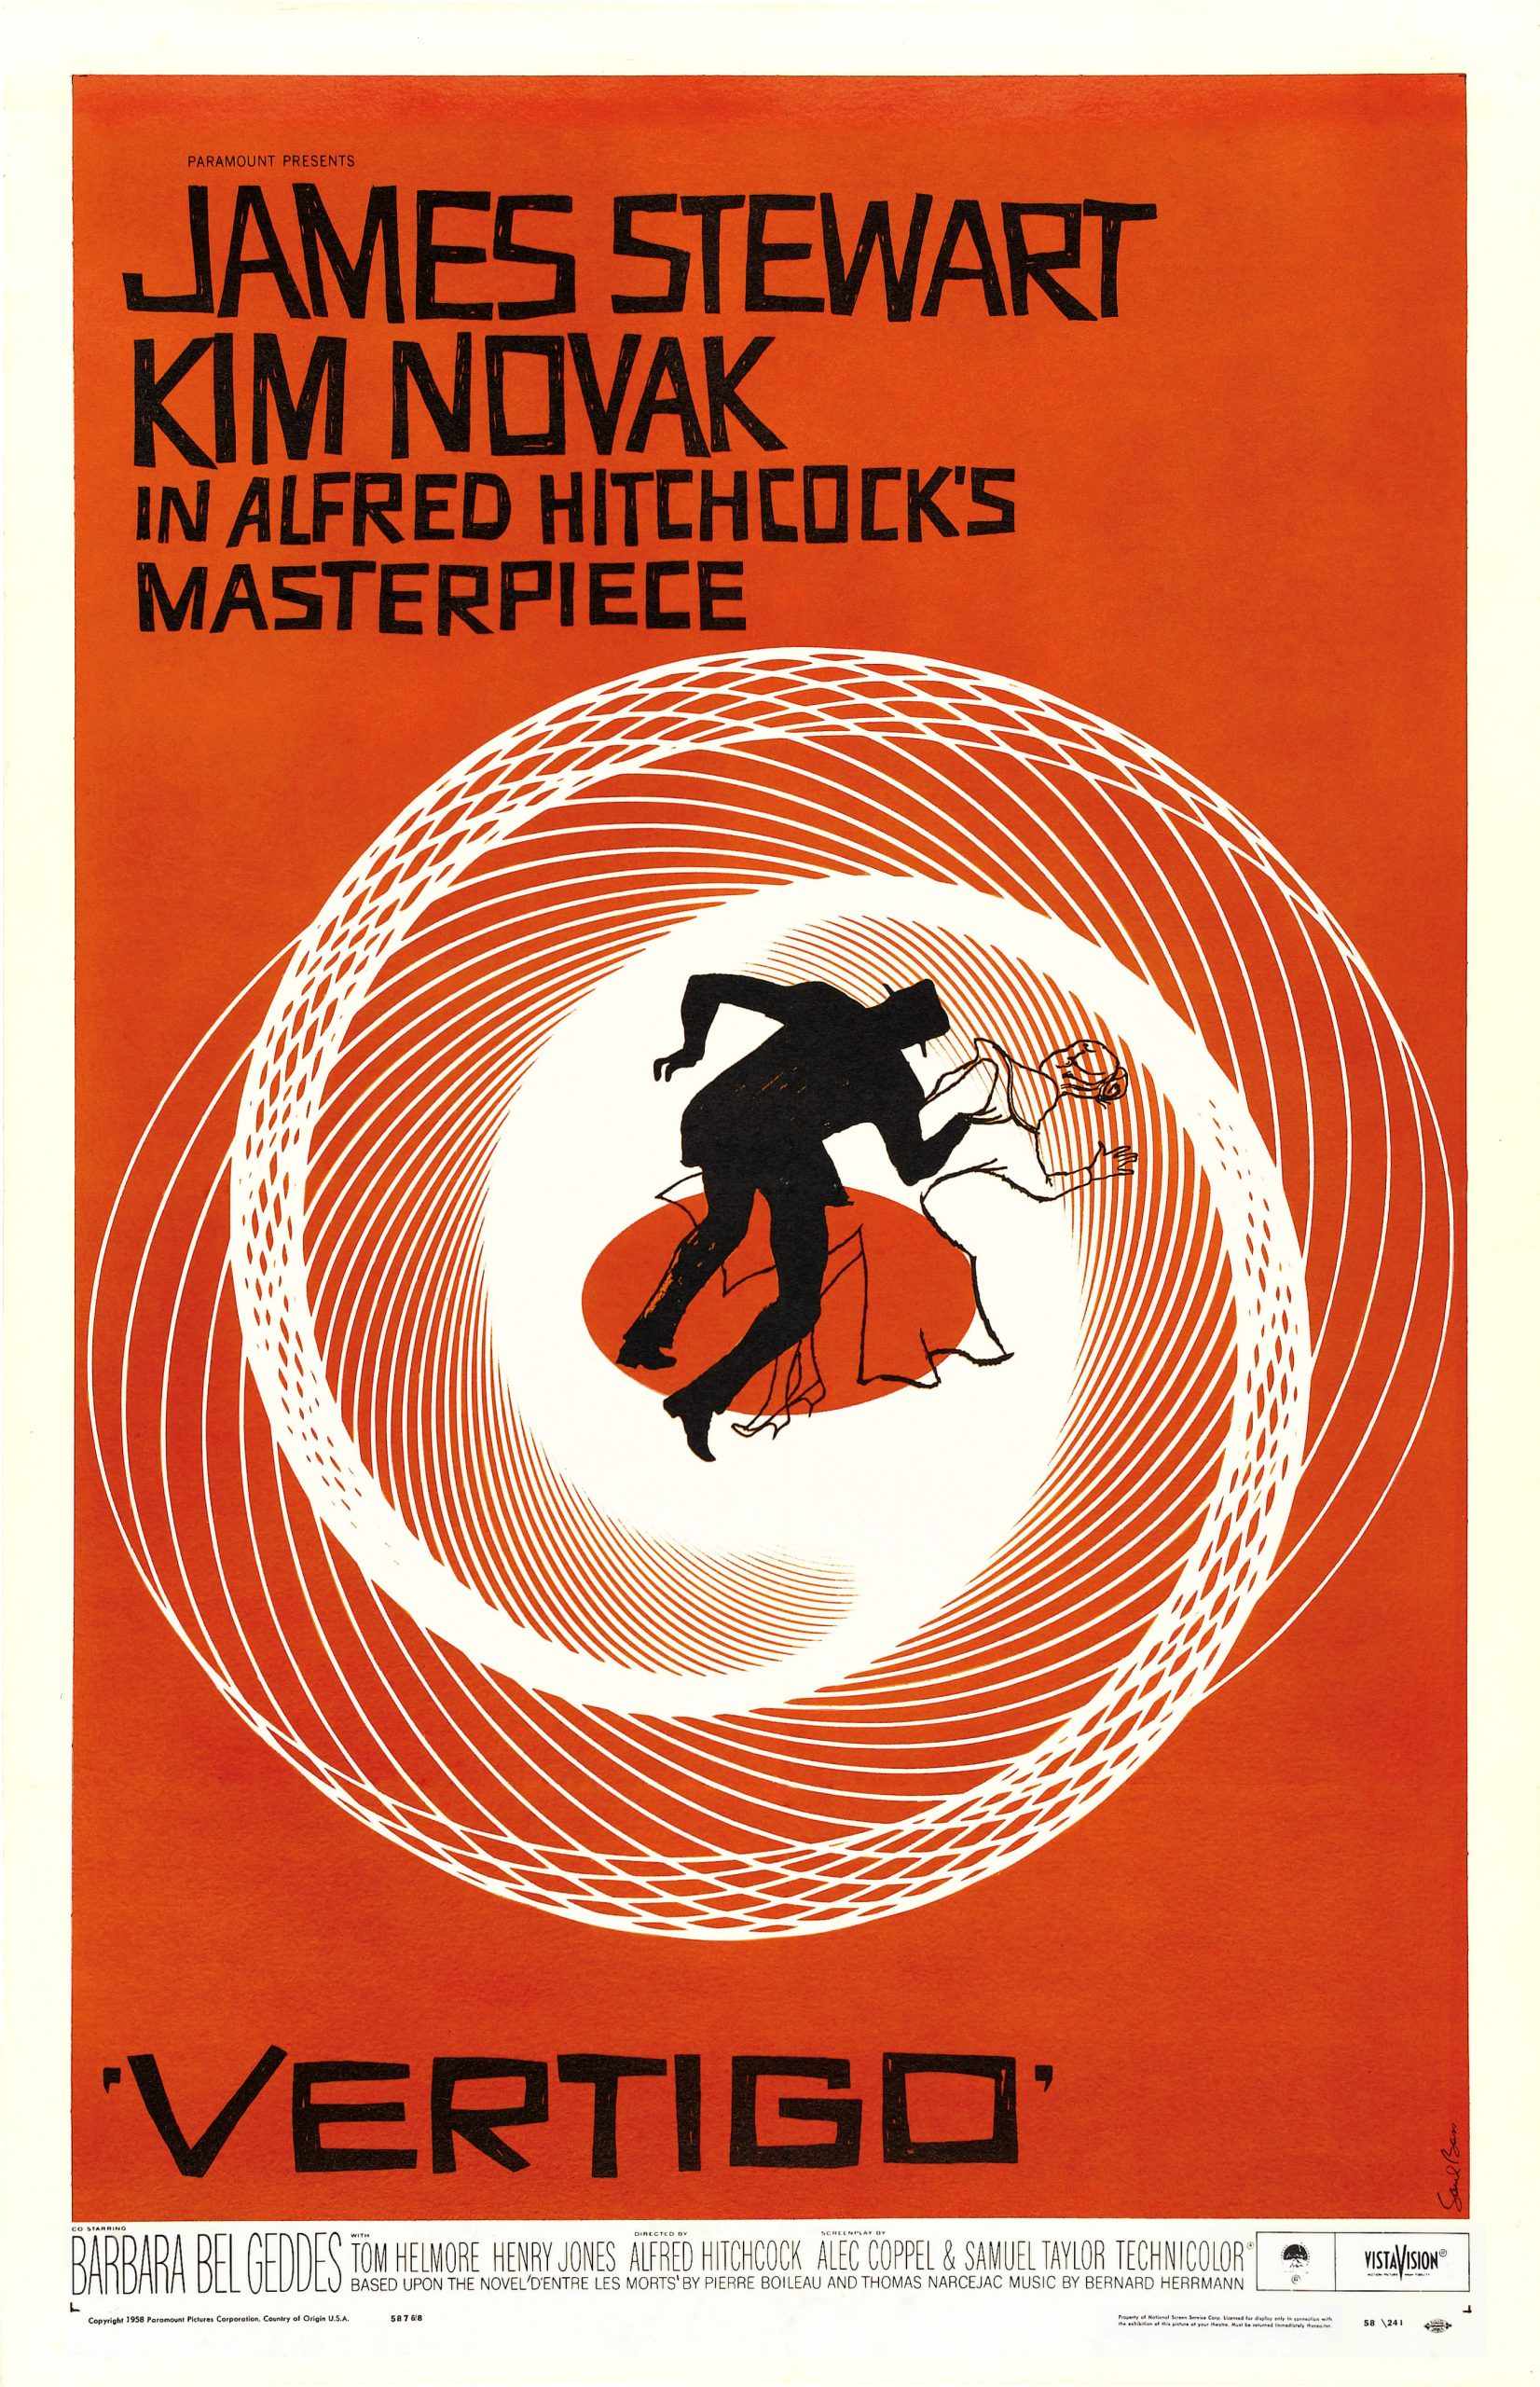 illustrational poster of a man and woman disappearing into a vortex